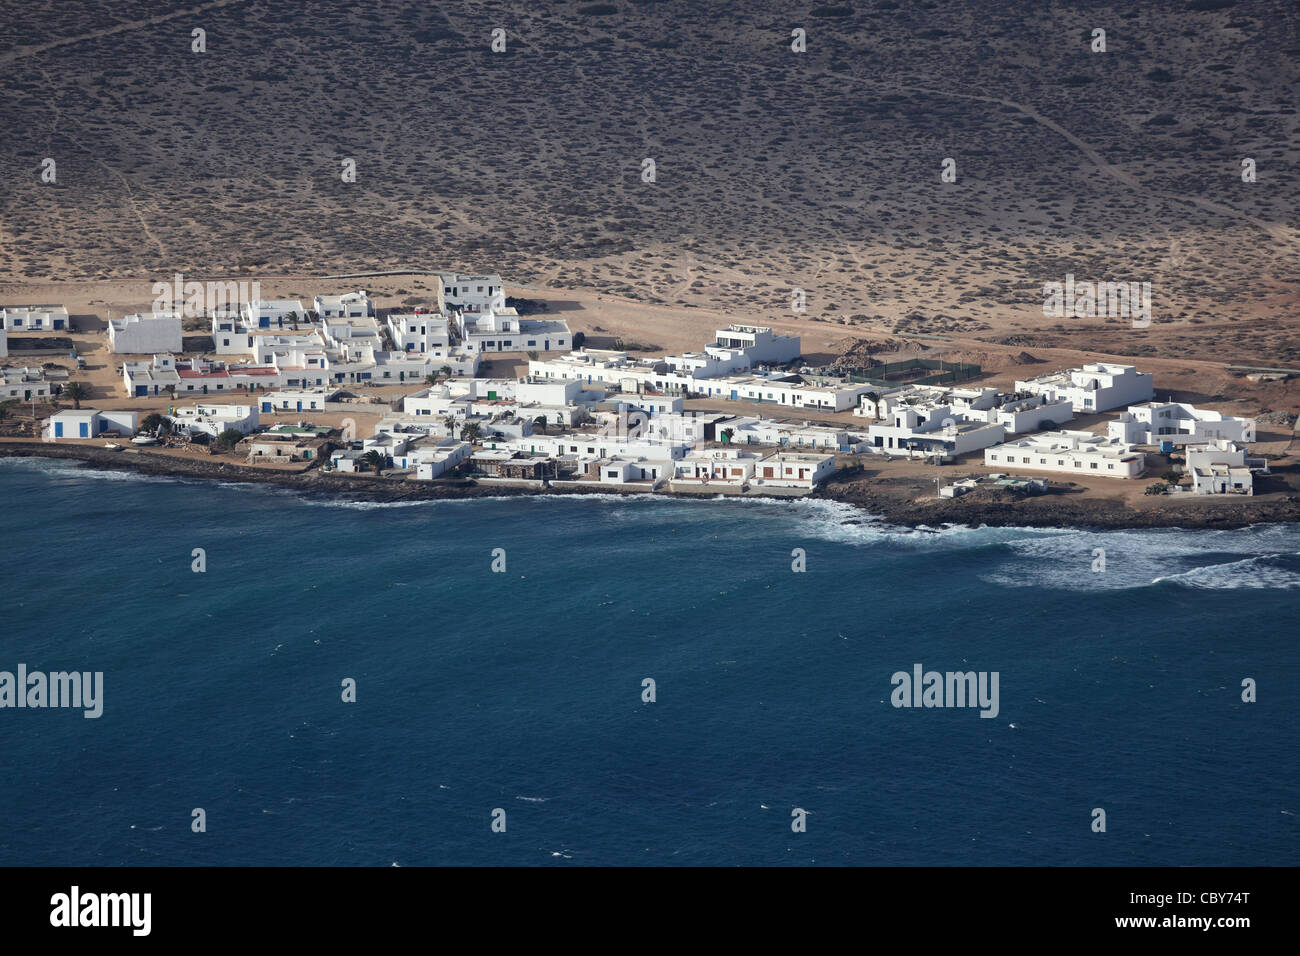 Aerial view of a fishing village on Canary Island La Graciosa, Lanzarote Spain Stock Photo